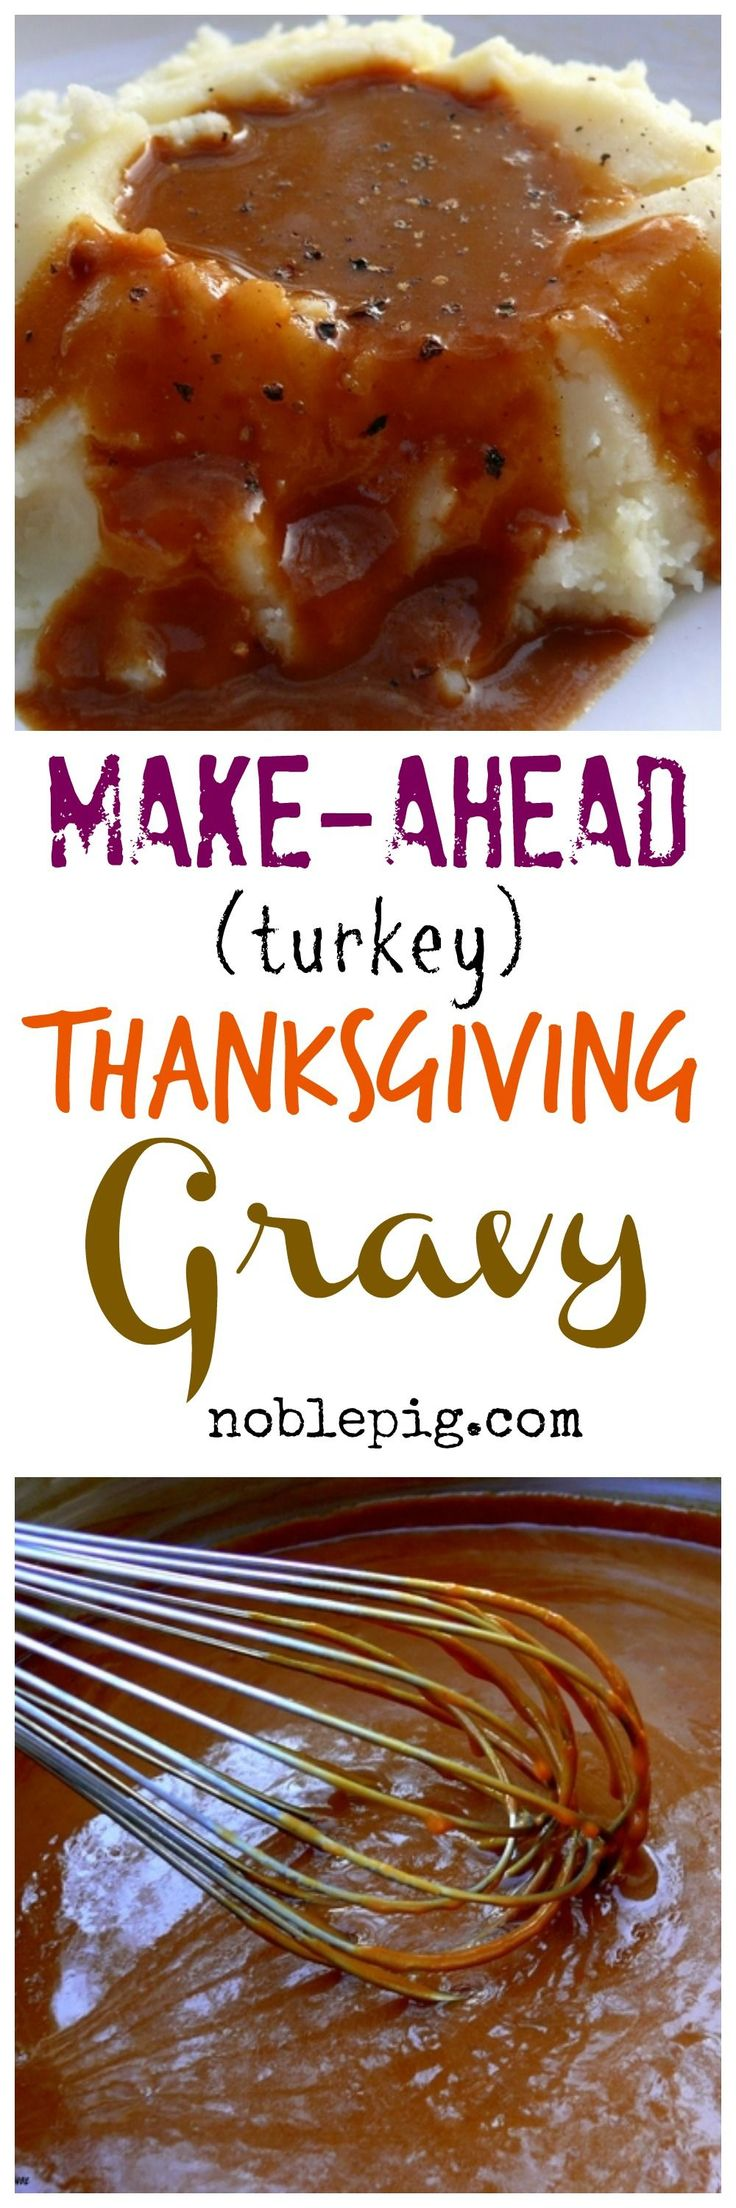 Make-Ahead (turkey) Thanksgiving Gravy. No need to go crazy at the last minute…